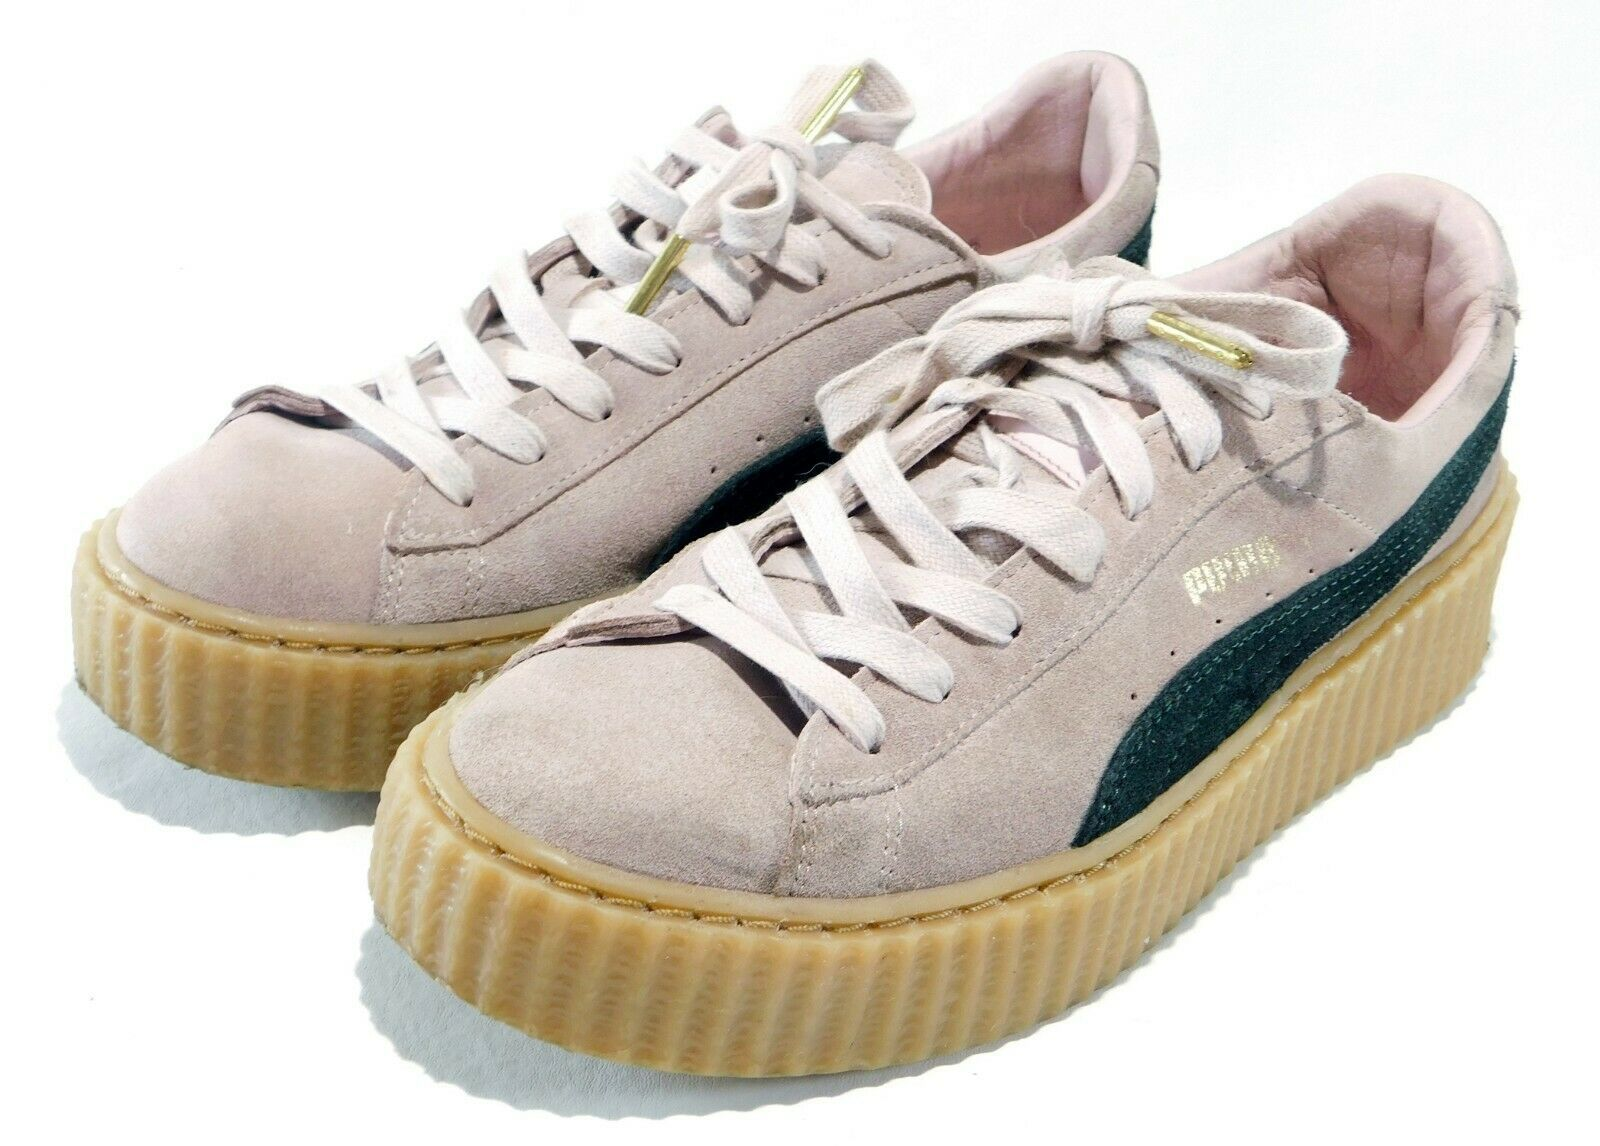 Puma by Rihanna Creepers in pink and green suede with  gum sole Women's Size US9 - $39.59